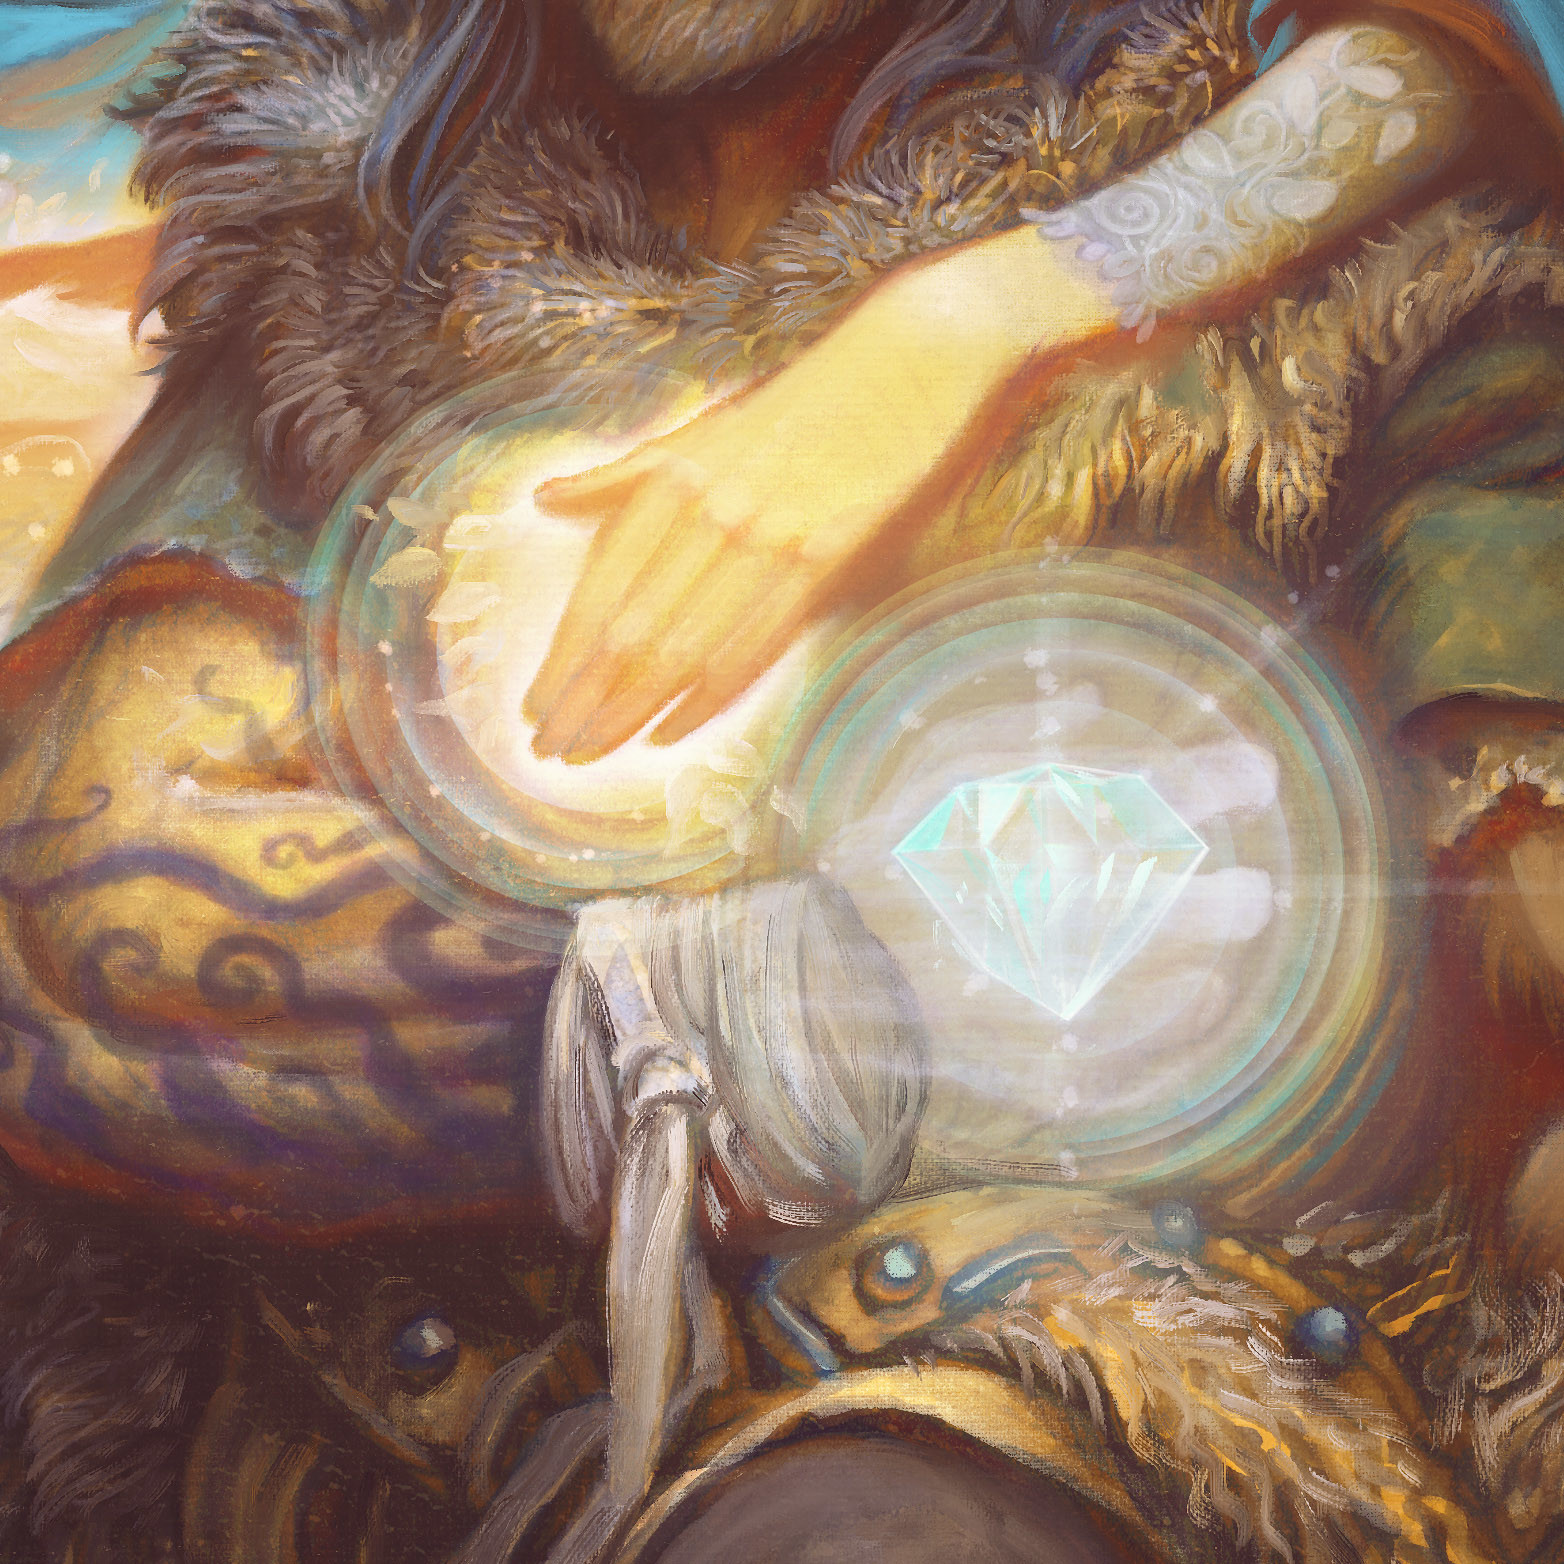 Detail of Beren's poisoned arm and ghost hand still clutching the Silmaril.